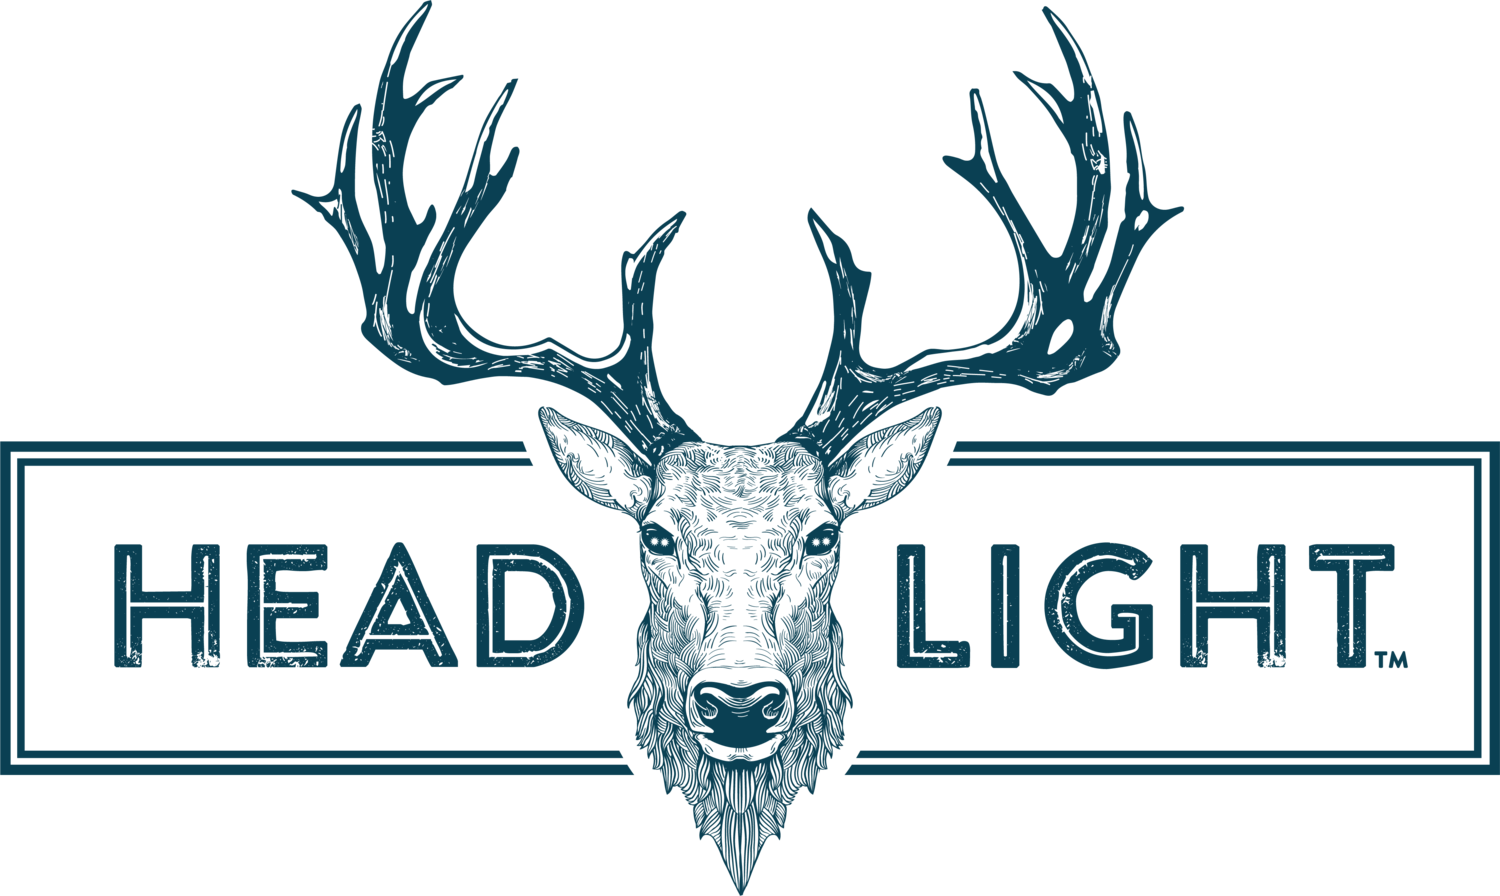 HEADLIGHT CANNABIS